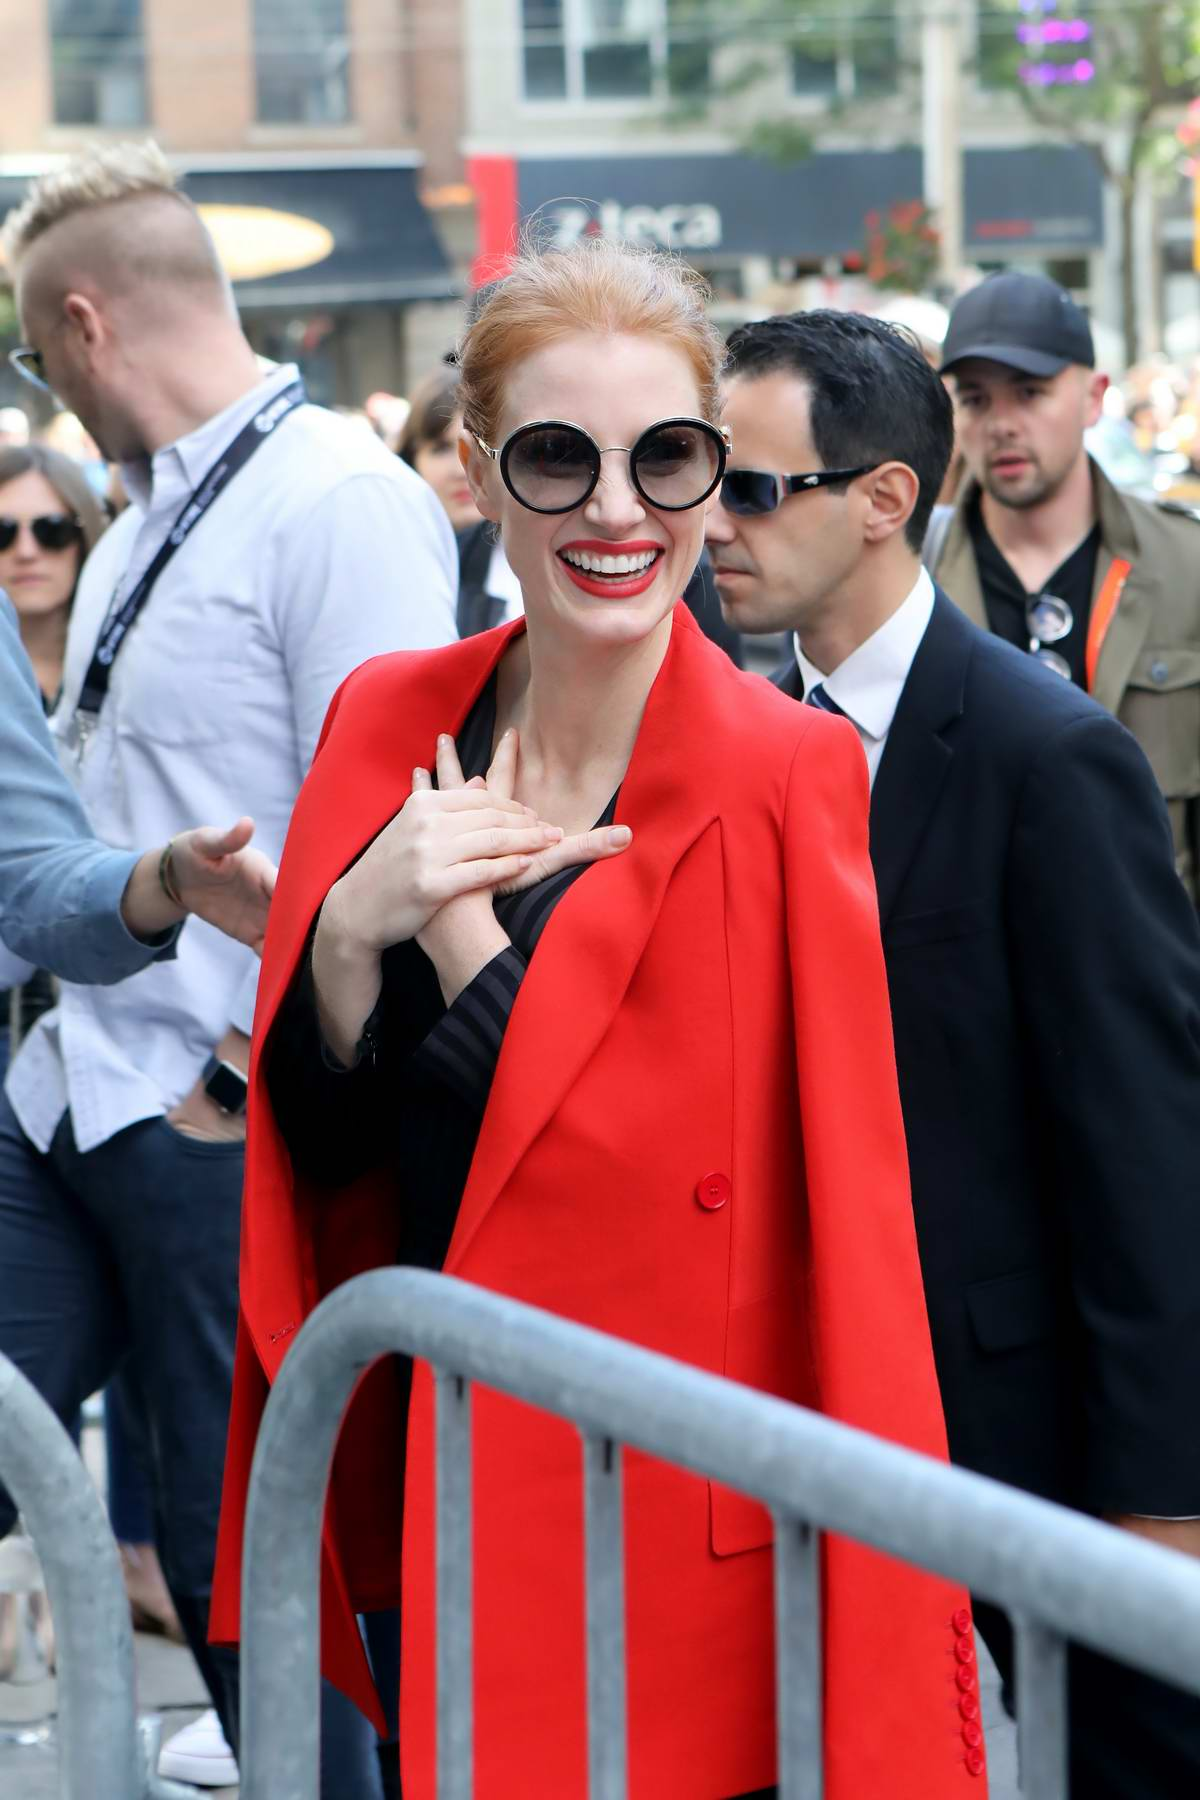 Jessica Chastain arriving at an event during Toronto International Film Festival in Toronto, Canada